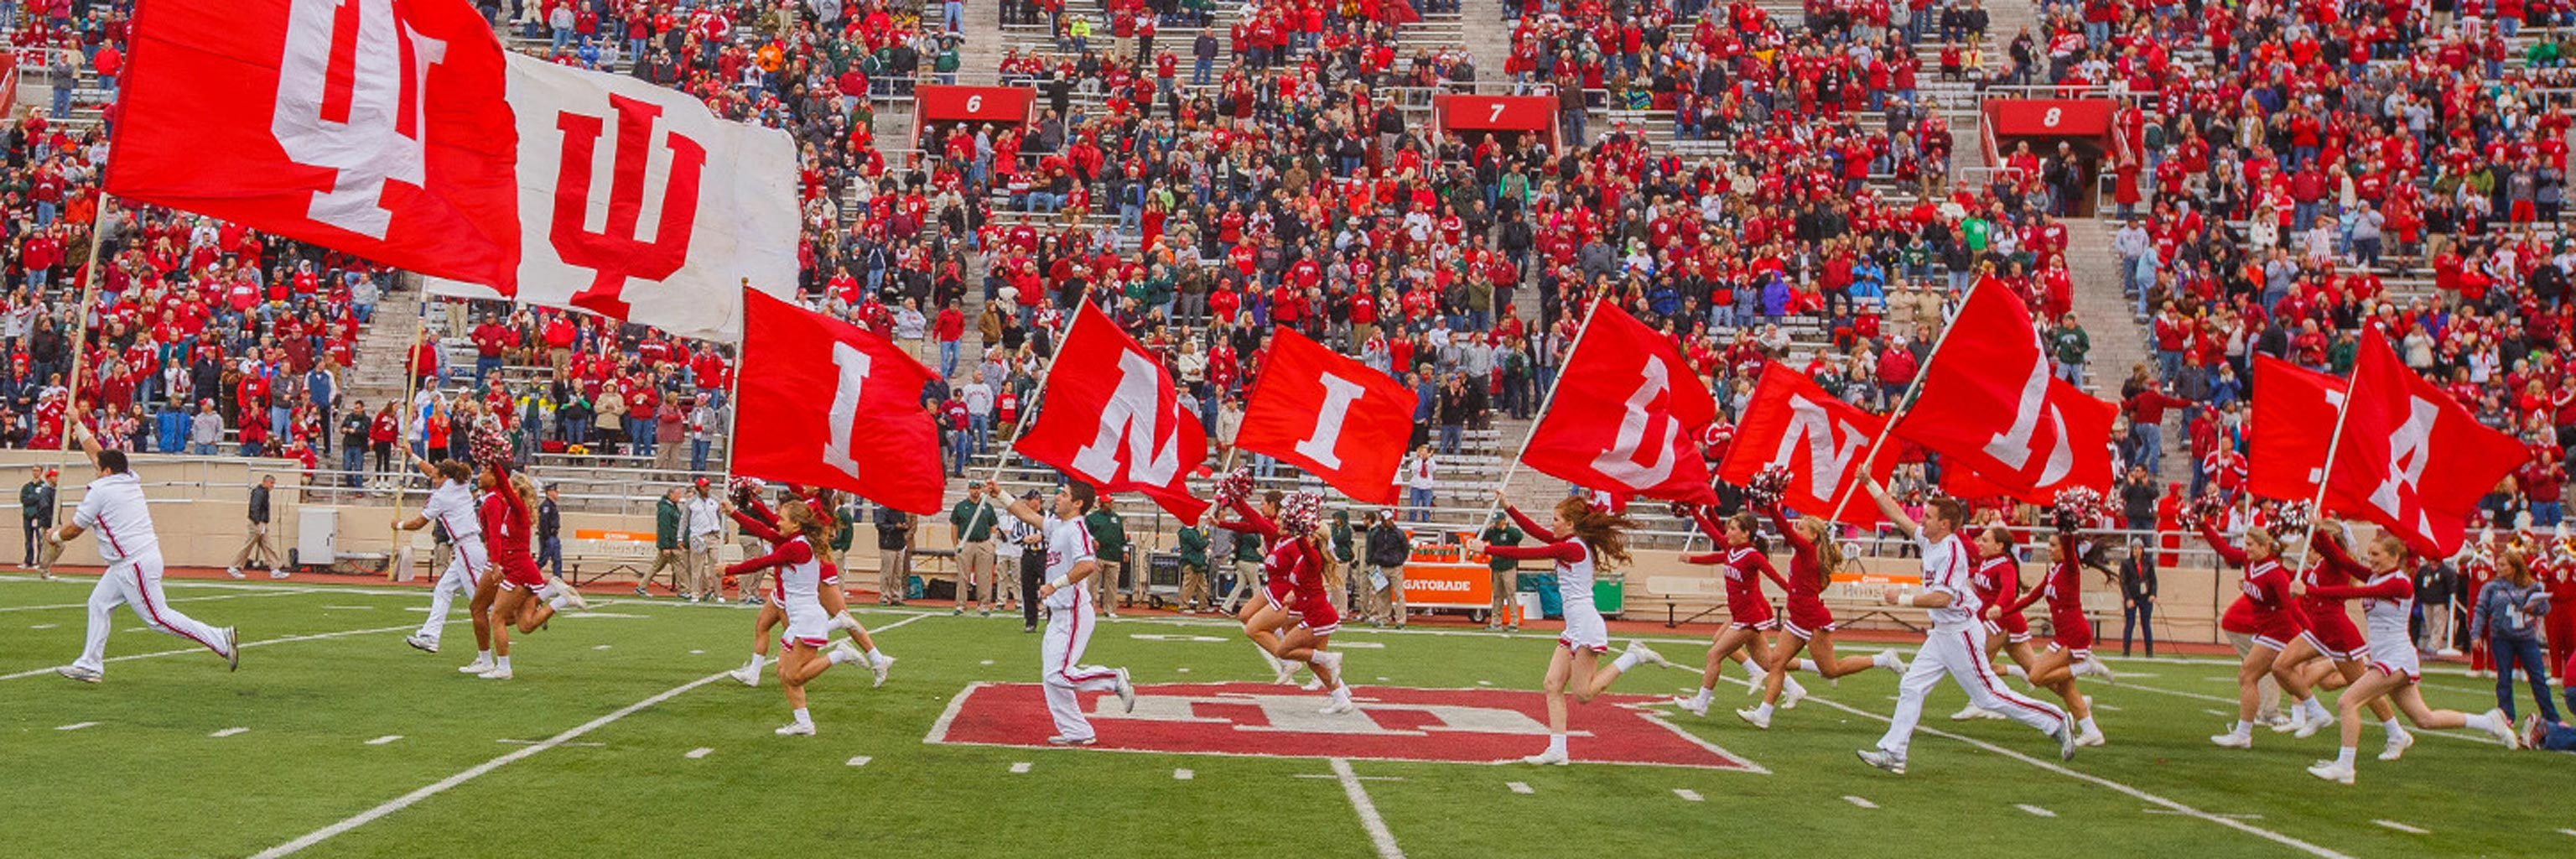 Indiana University cheering team running down football field with school flags